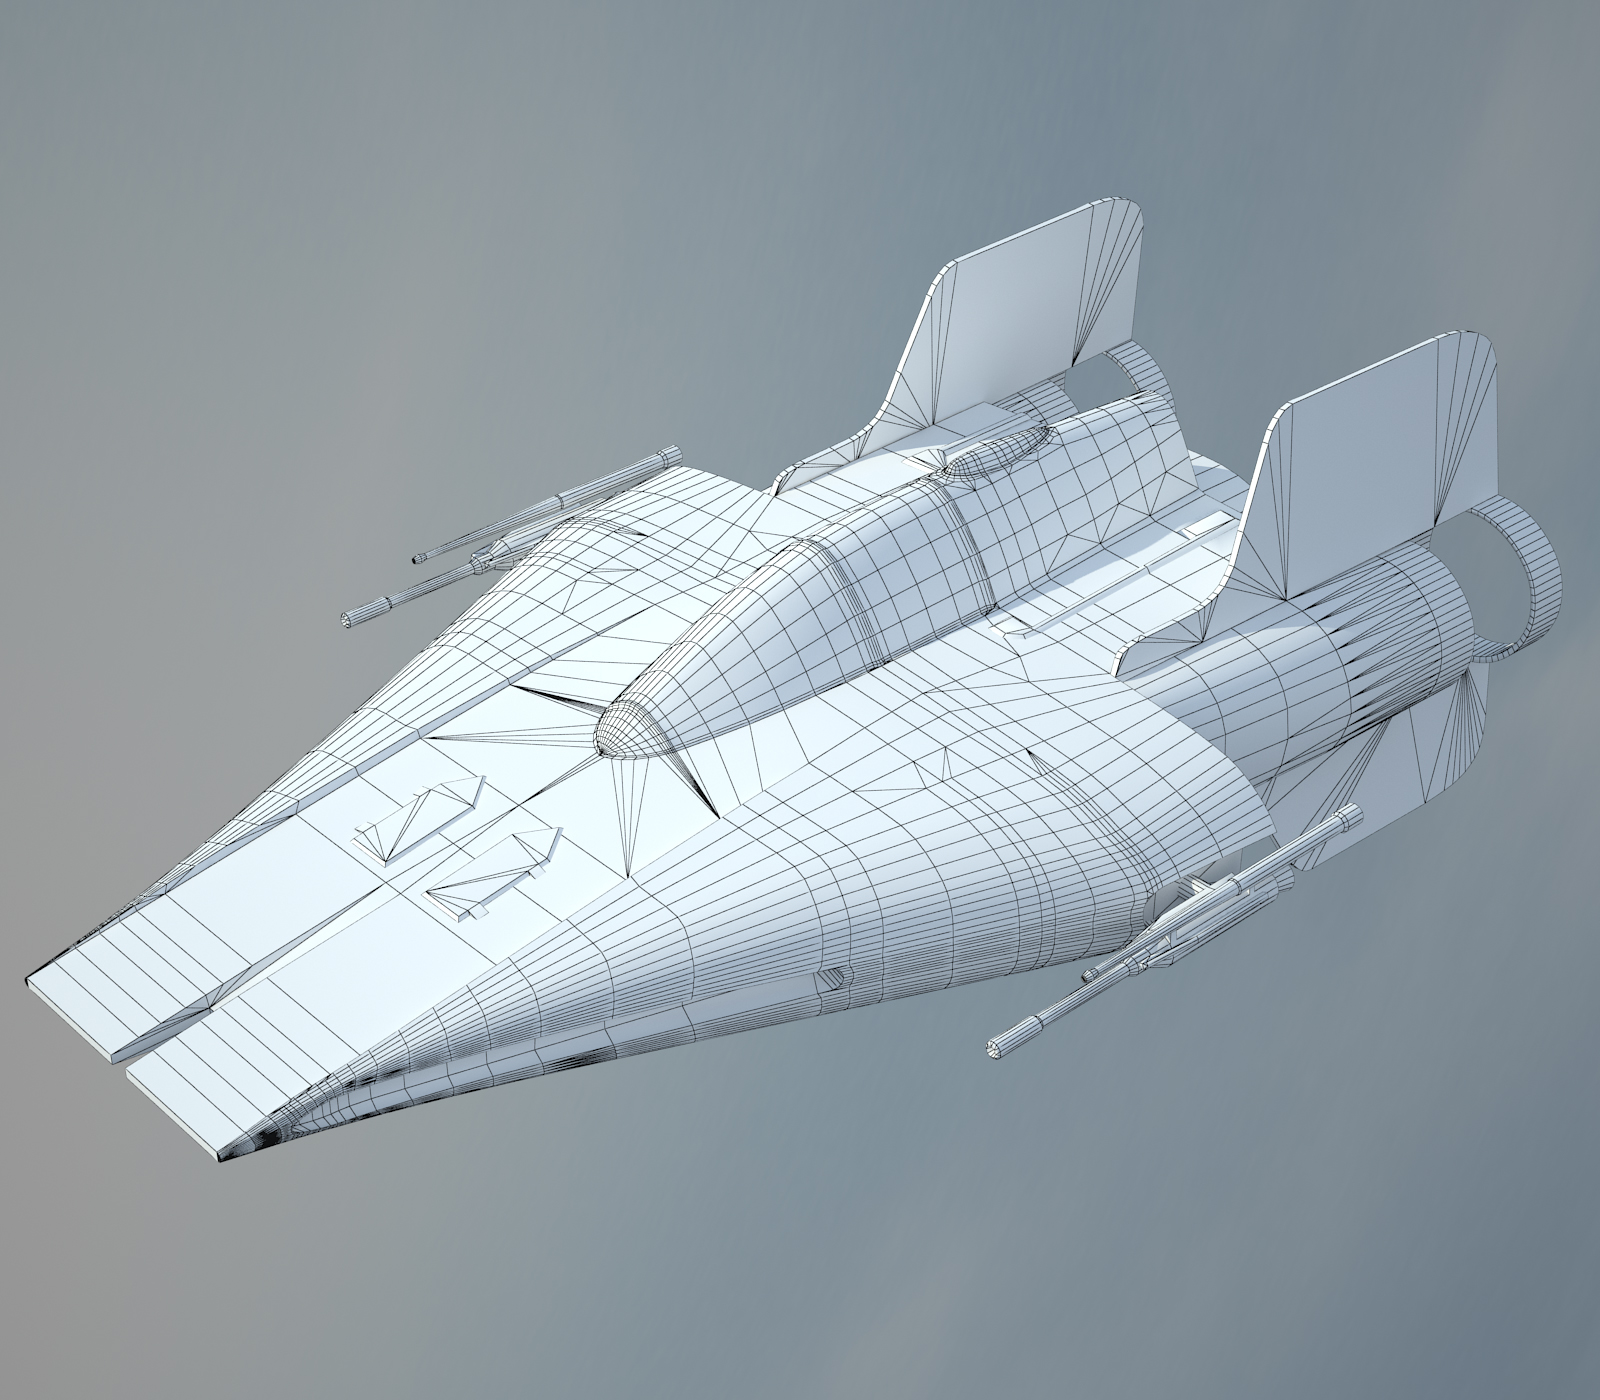 Game Ready Star Wars RZ-1 A-wing interceptor Starfighter 3D Model